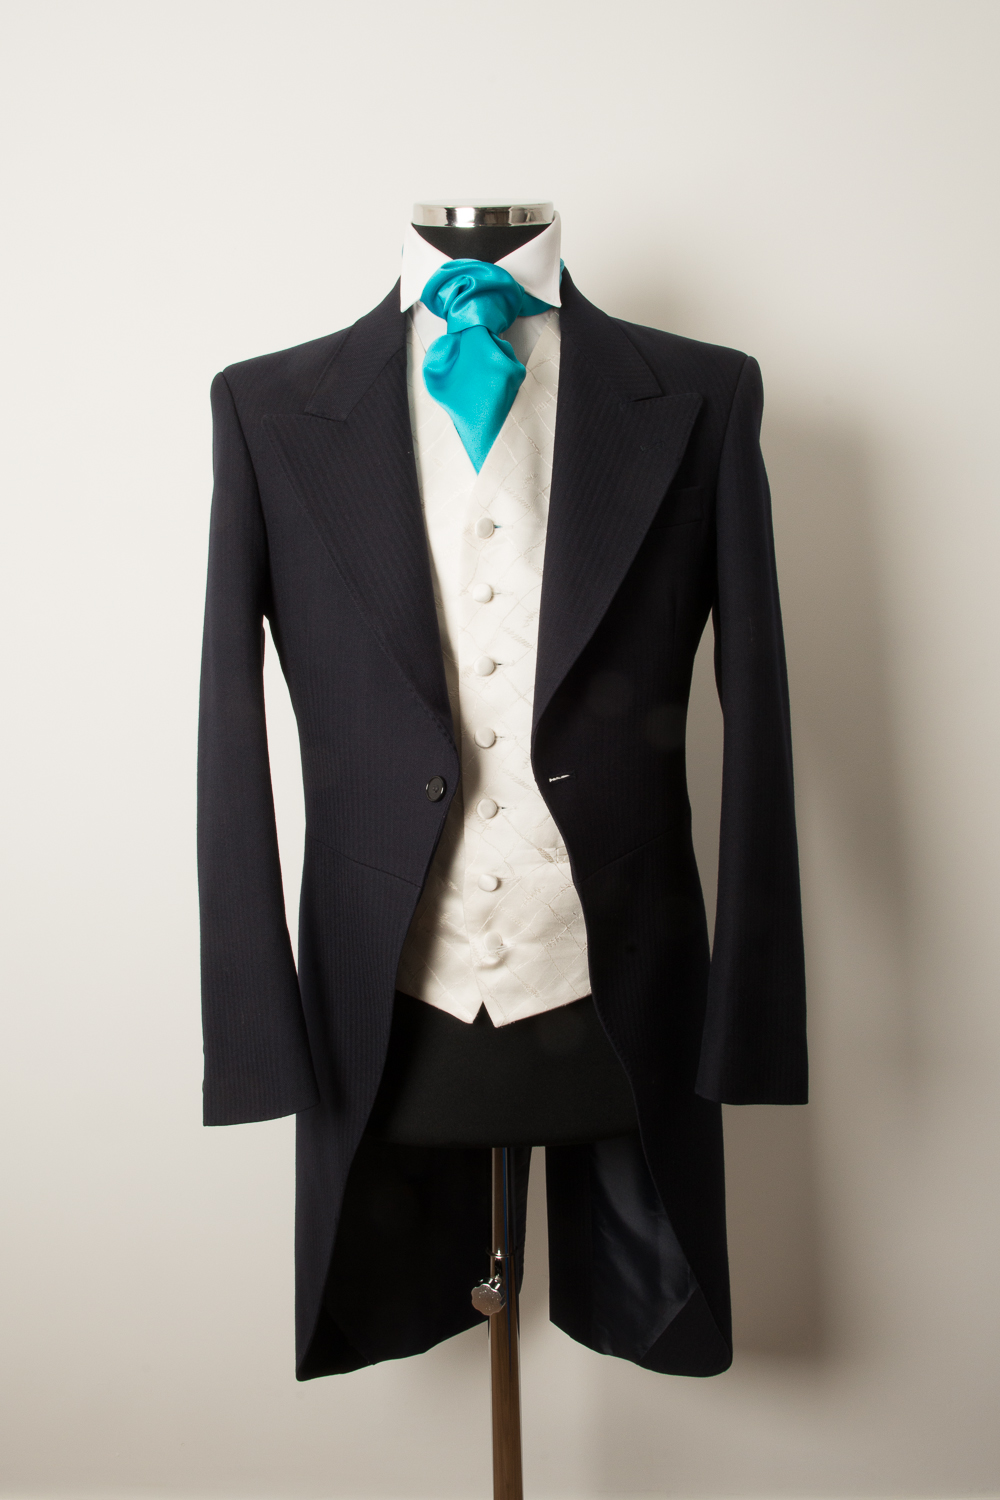 NAVY TAILCOAT - WEDDING